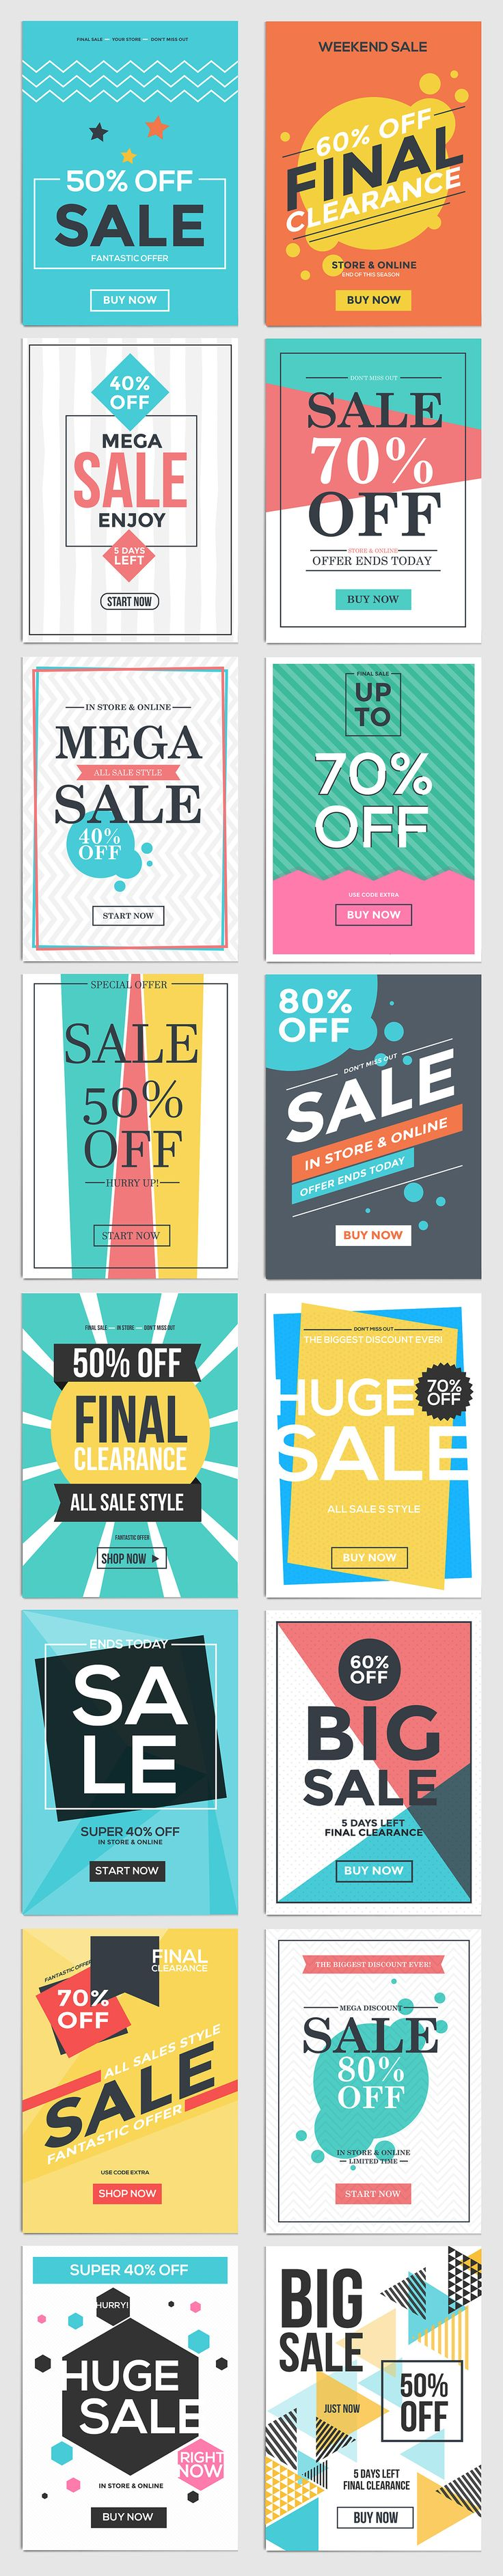 Poster design ideas for school - Flat Design Sale Flyer Templates